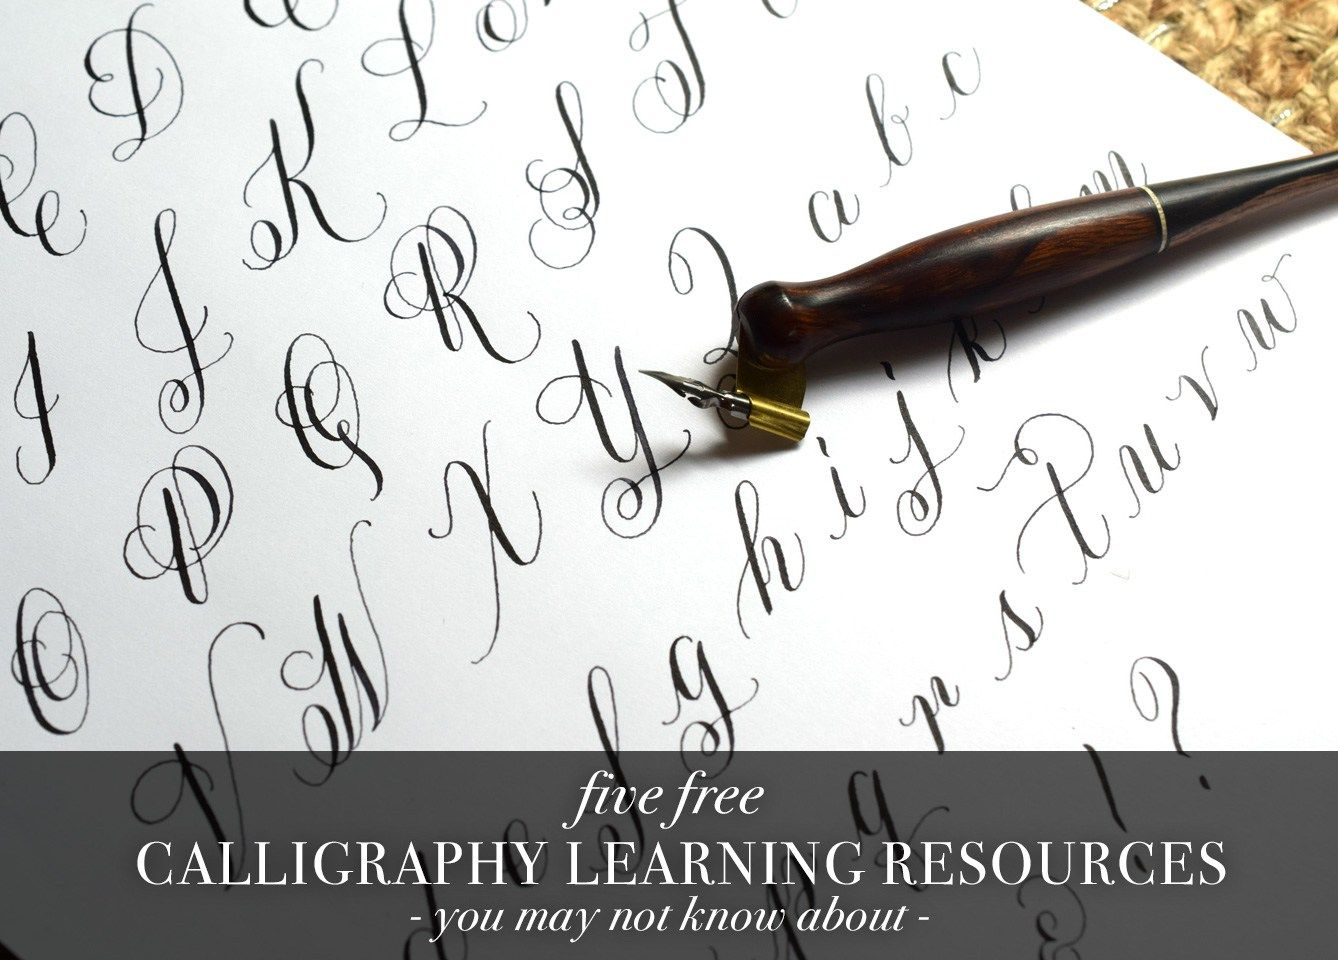 5 Free Calligraphy Learning Resources You May Not Know